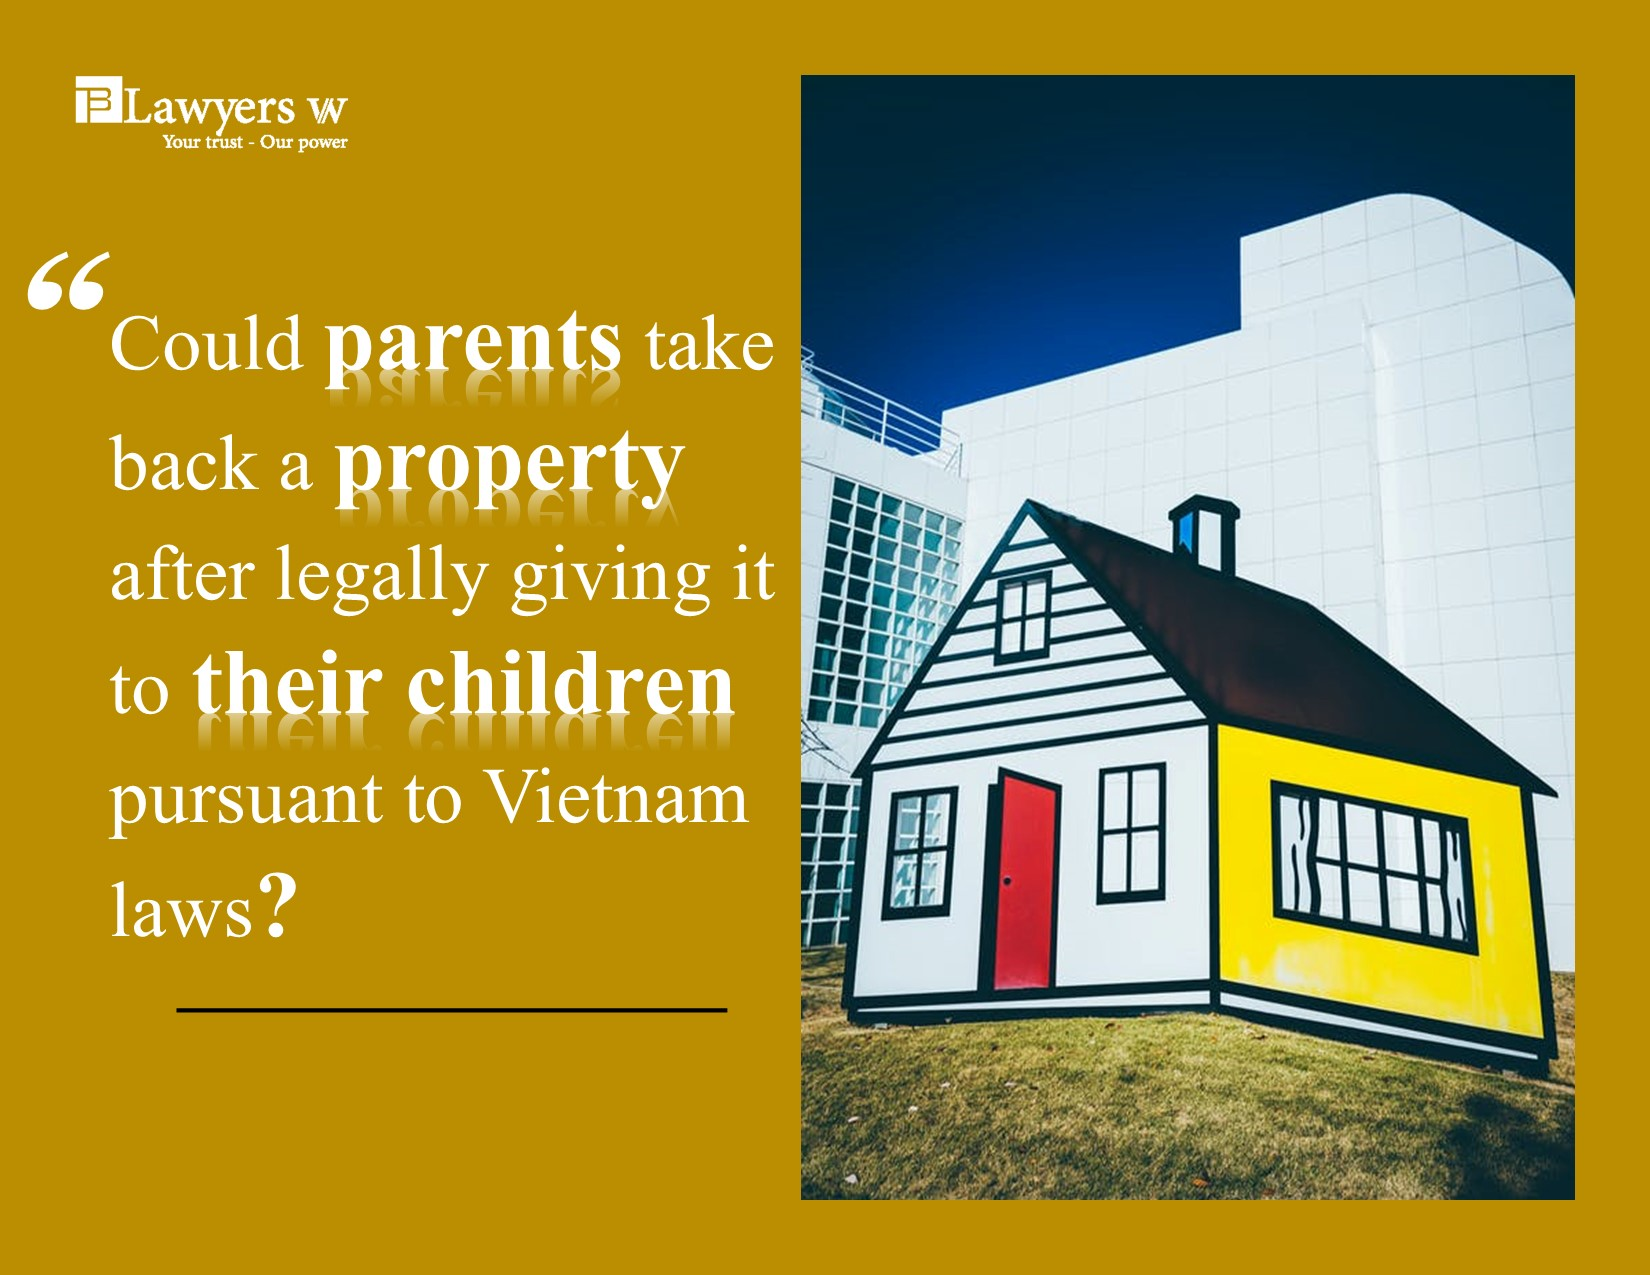 Could parents take back a property giving to their children by law?